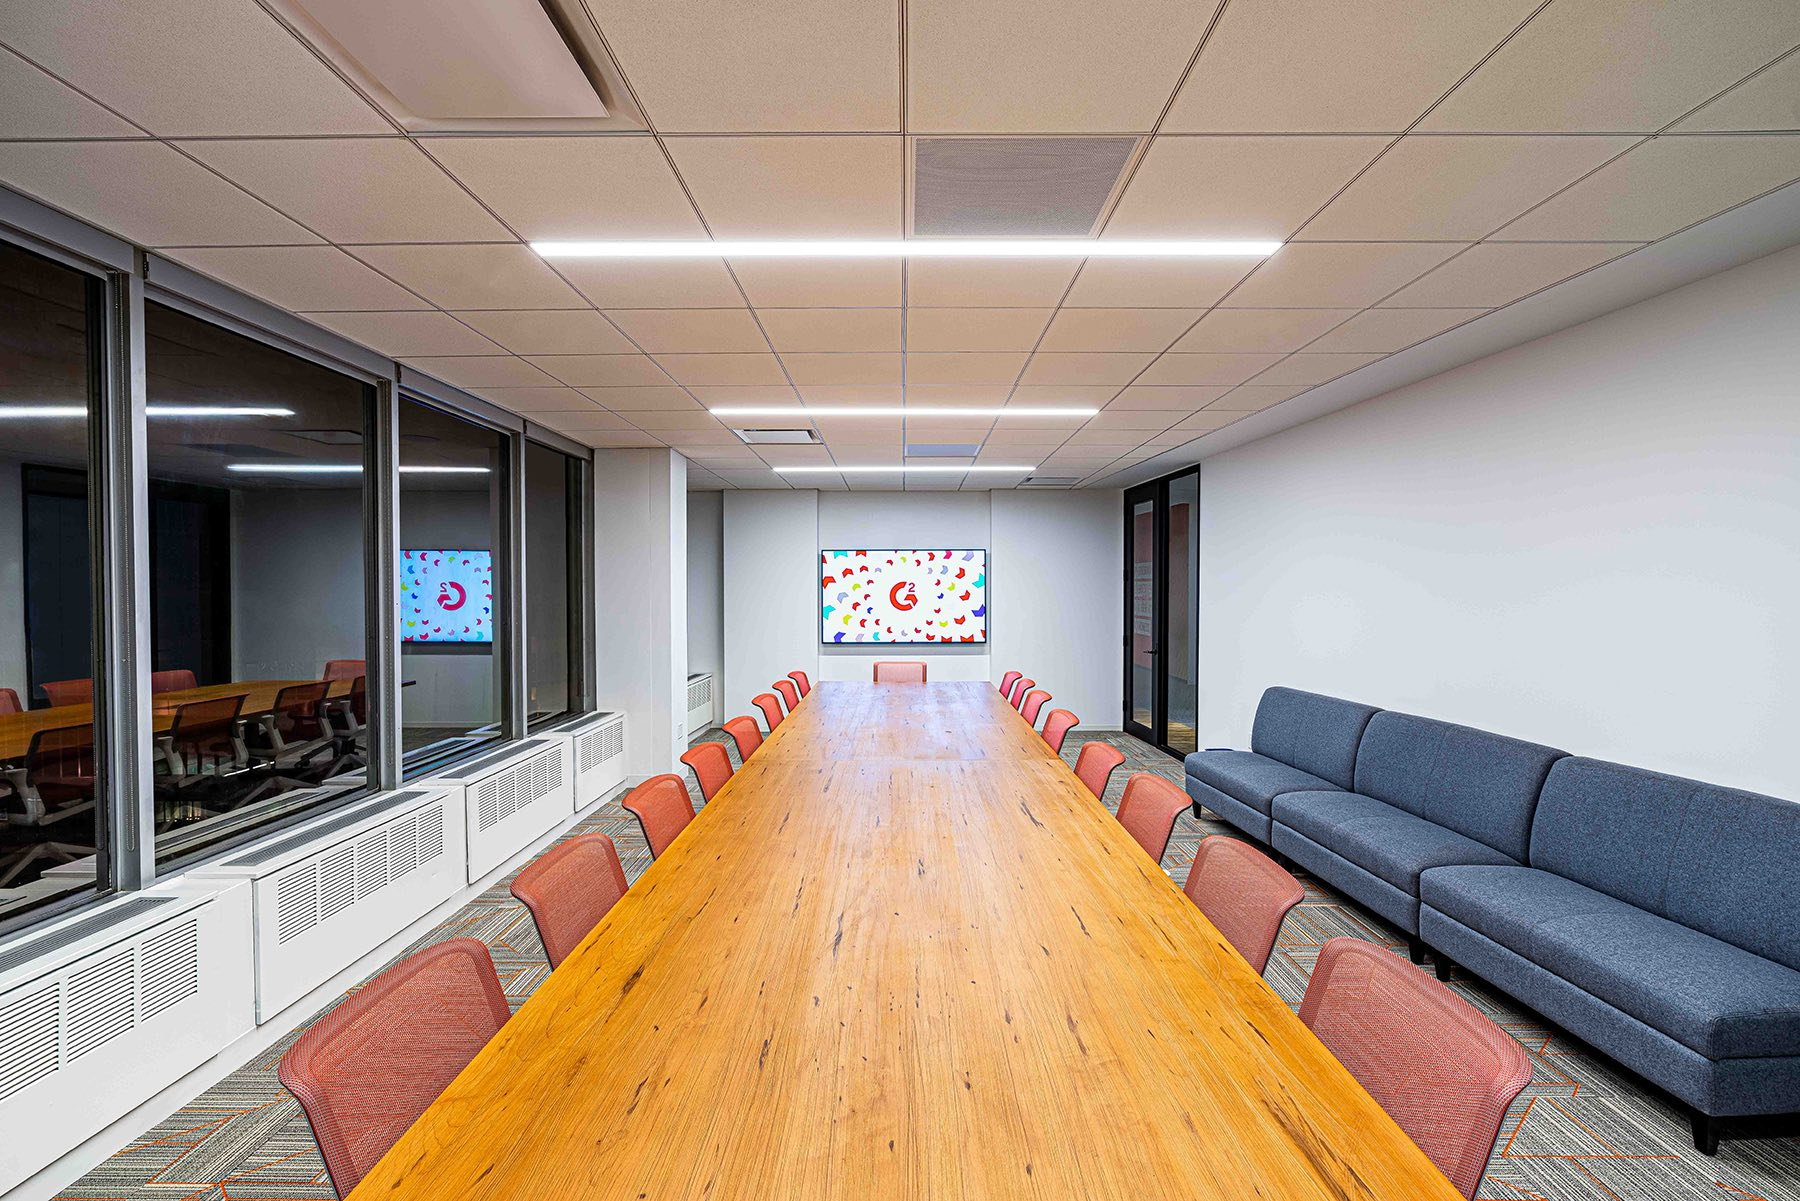 A Look Inside G2's Cool New Chicago Office